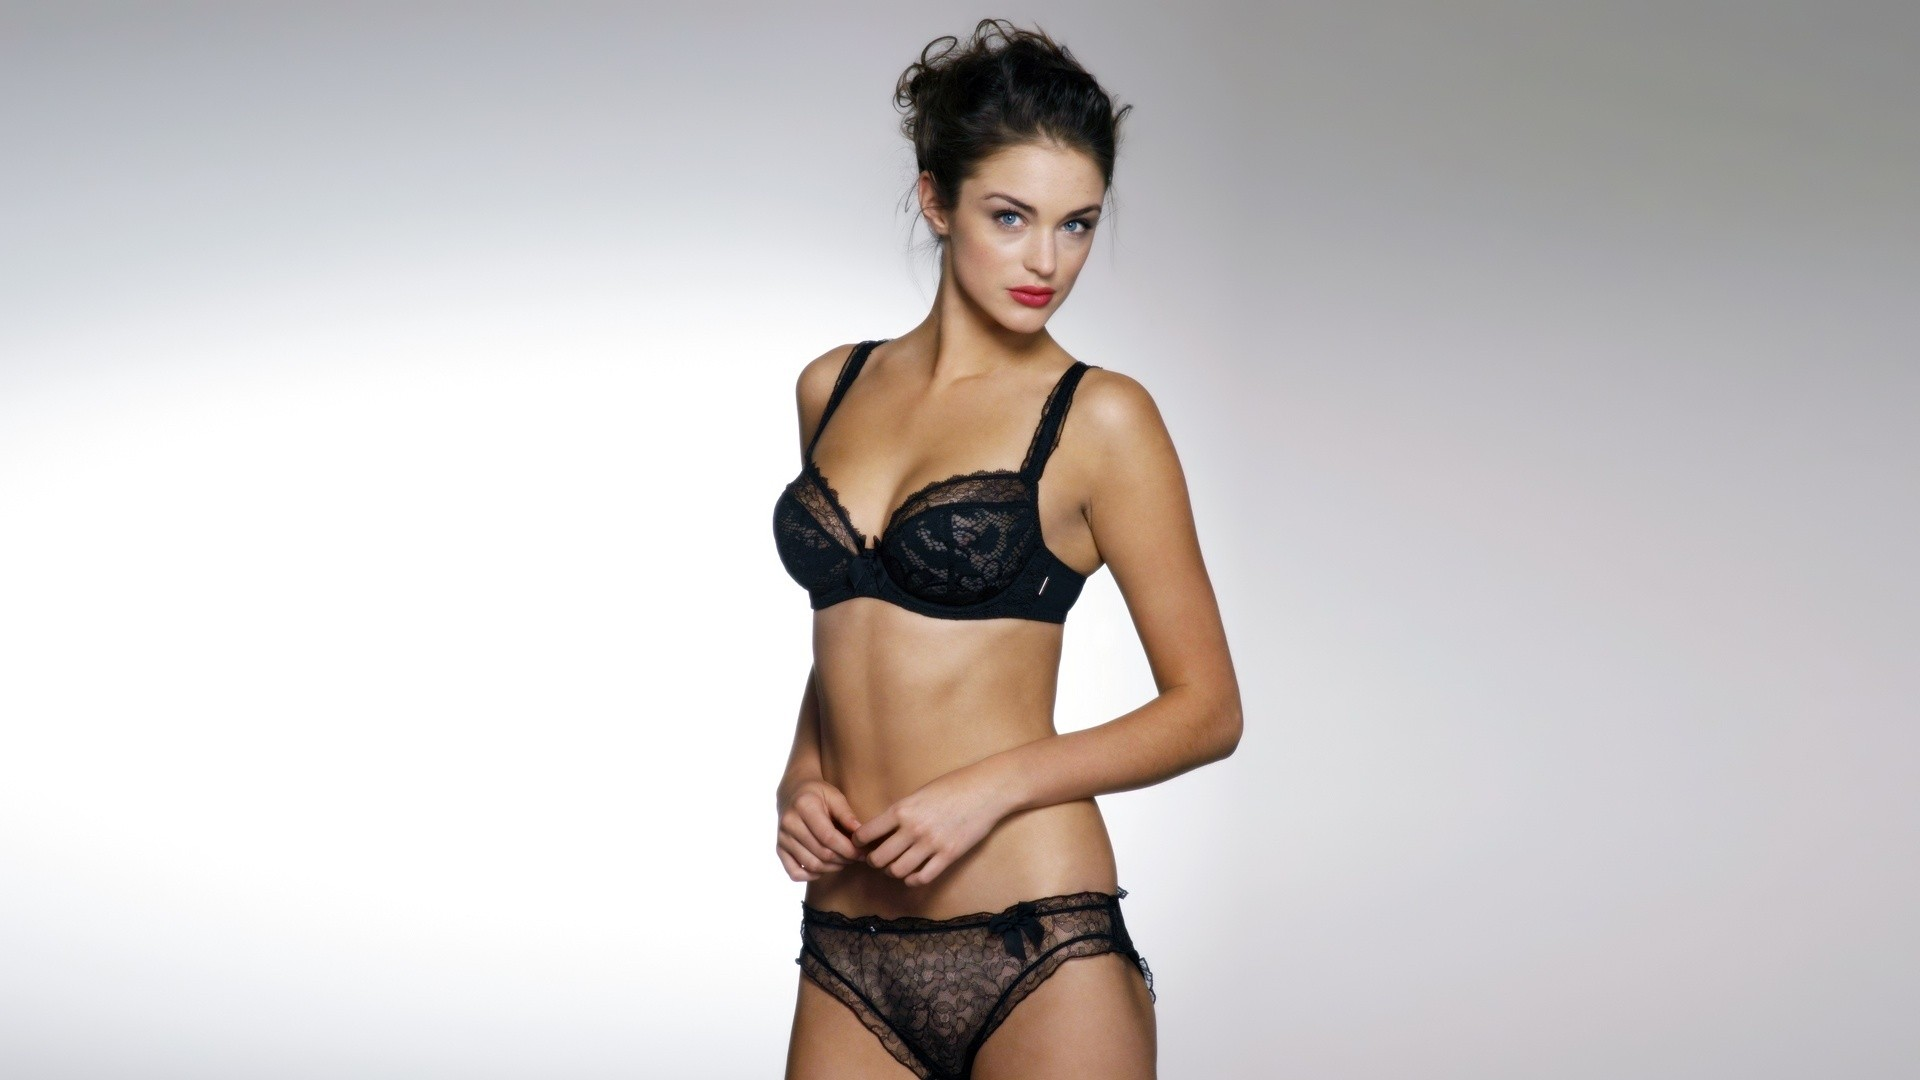 lingerie brunettes woman panties HD Wallpaper